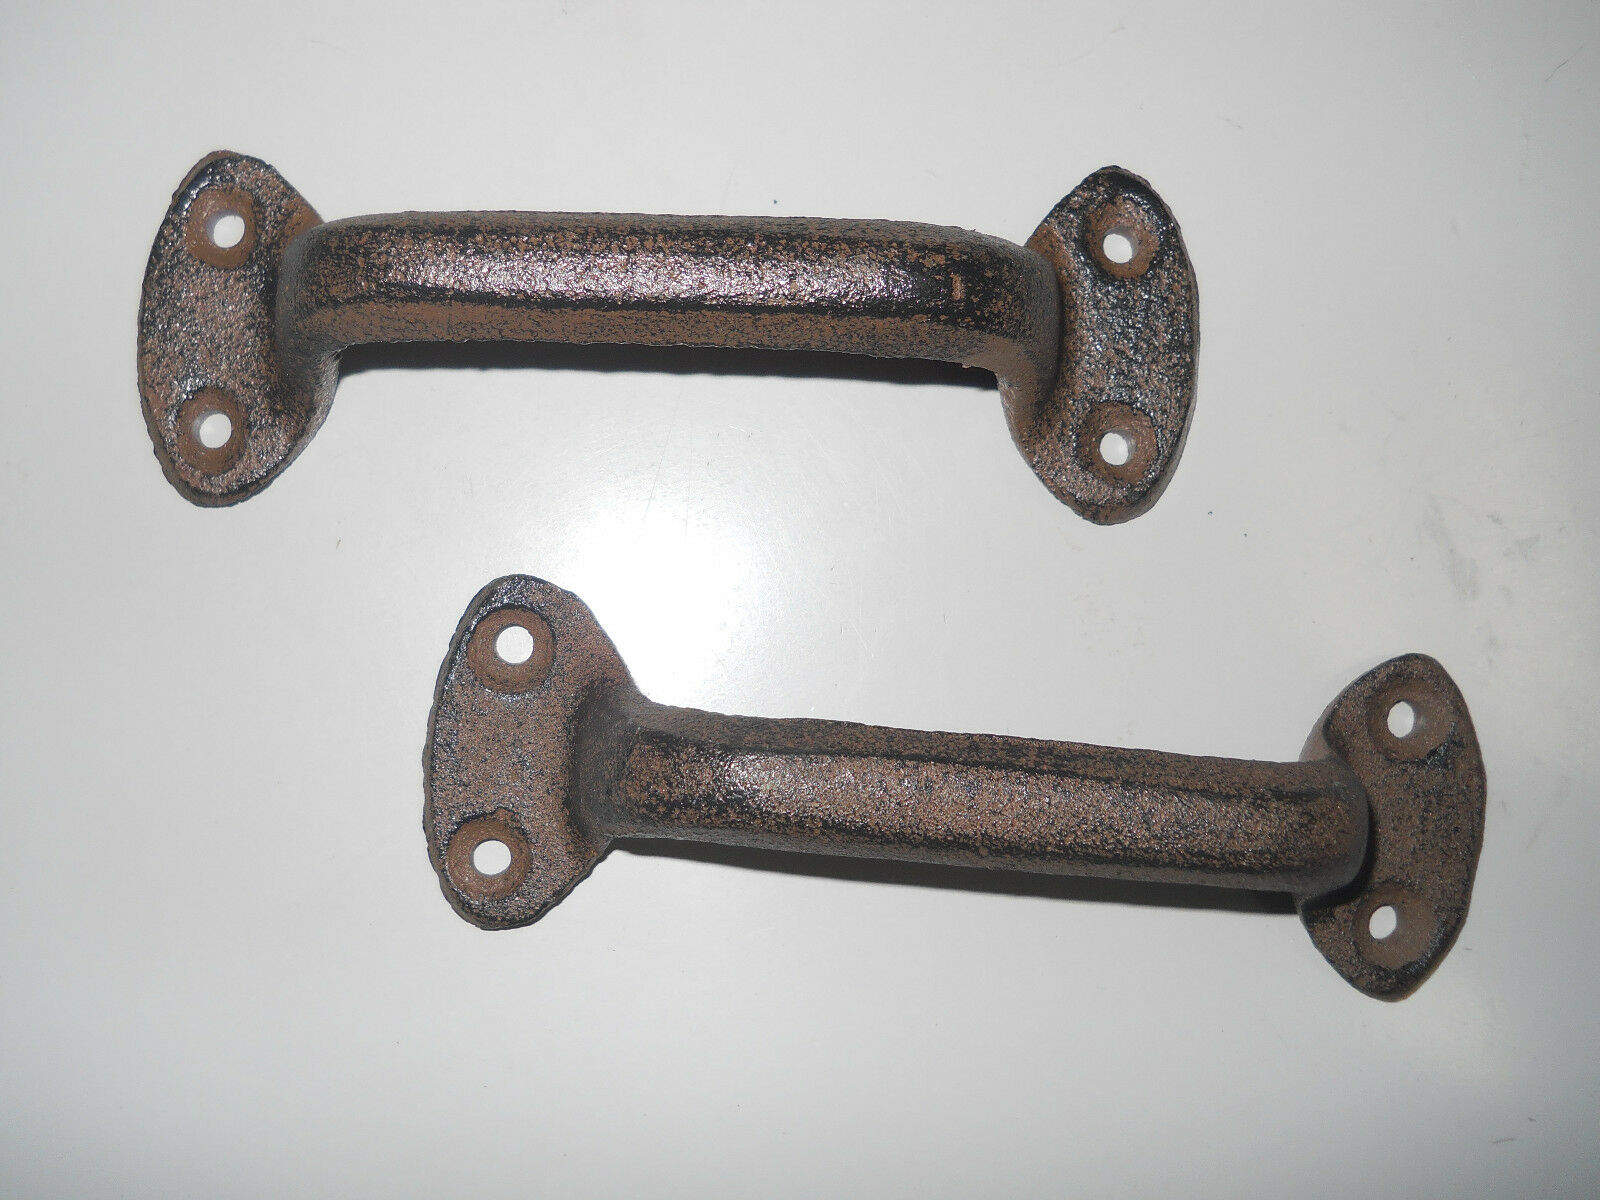 1 Cast Iron Antique Style RUSTIC Barn Handle, Gate Pull, Shed / Door Handles HD